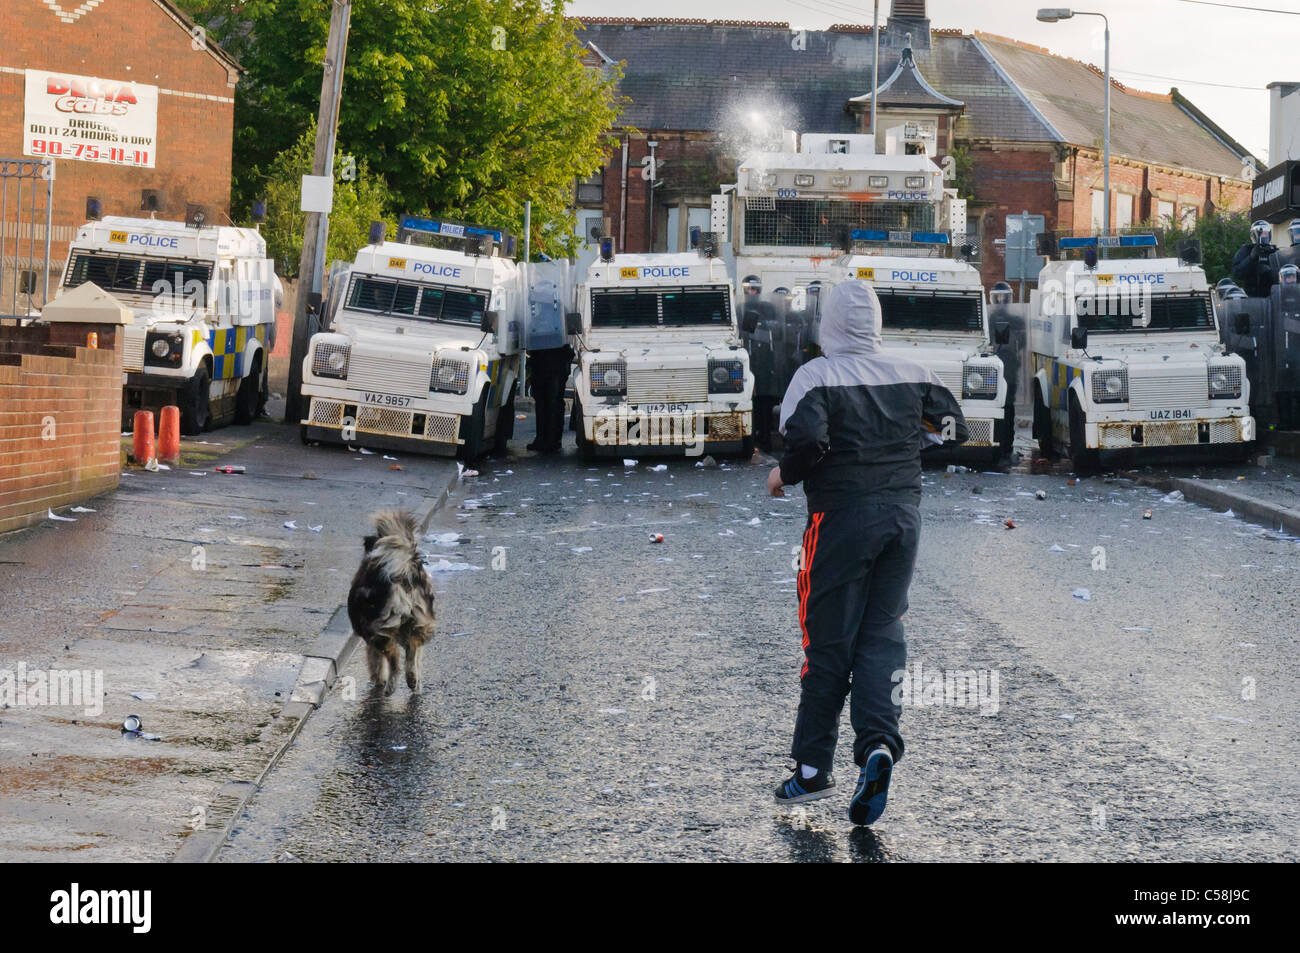 Rioter confronts police as water cannon is fired at him - Stock Image